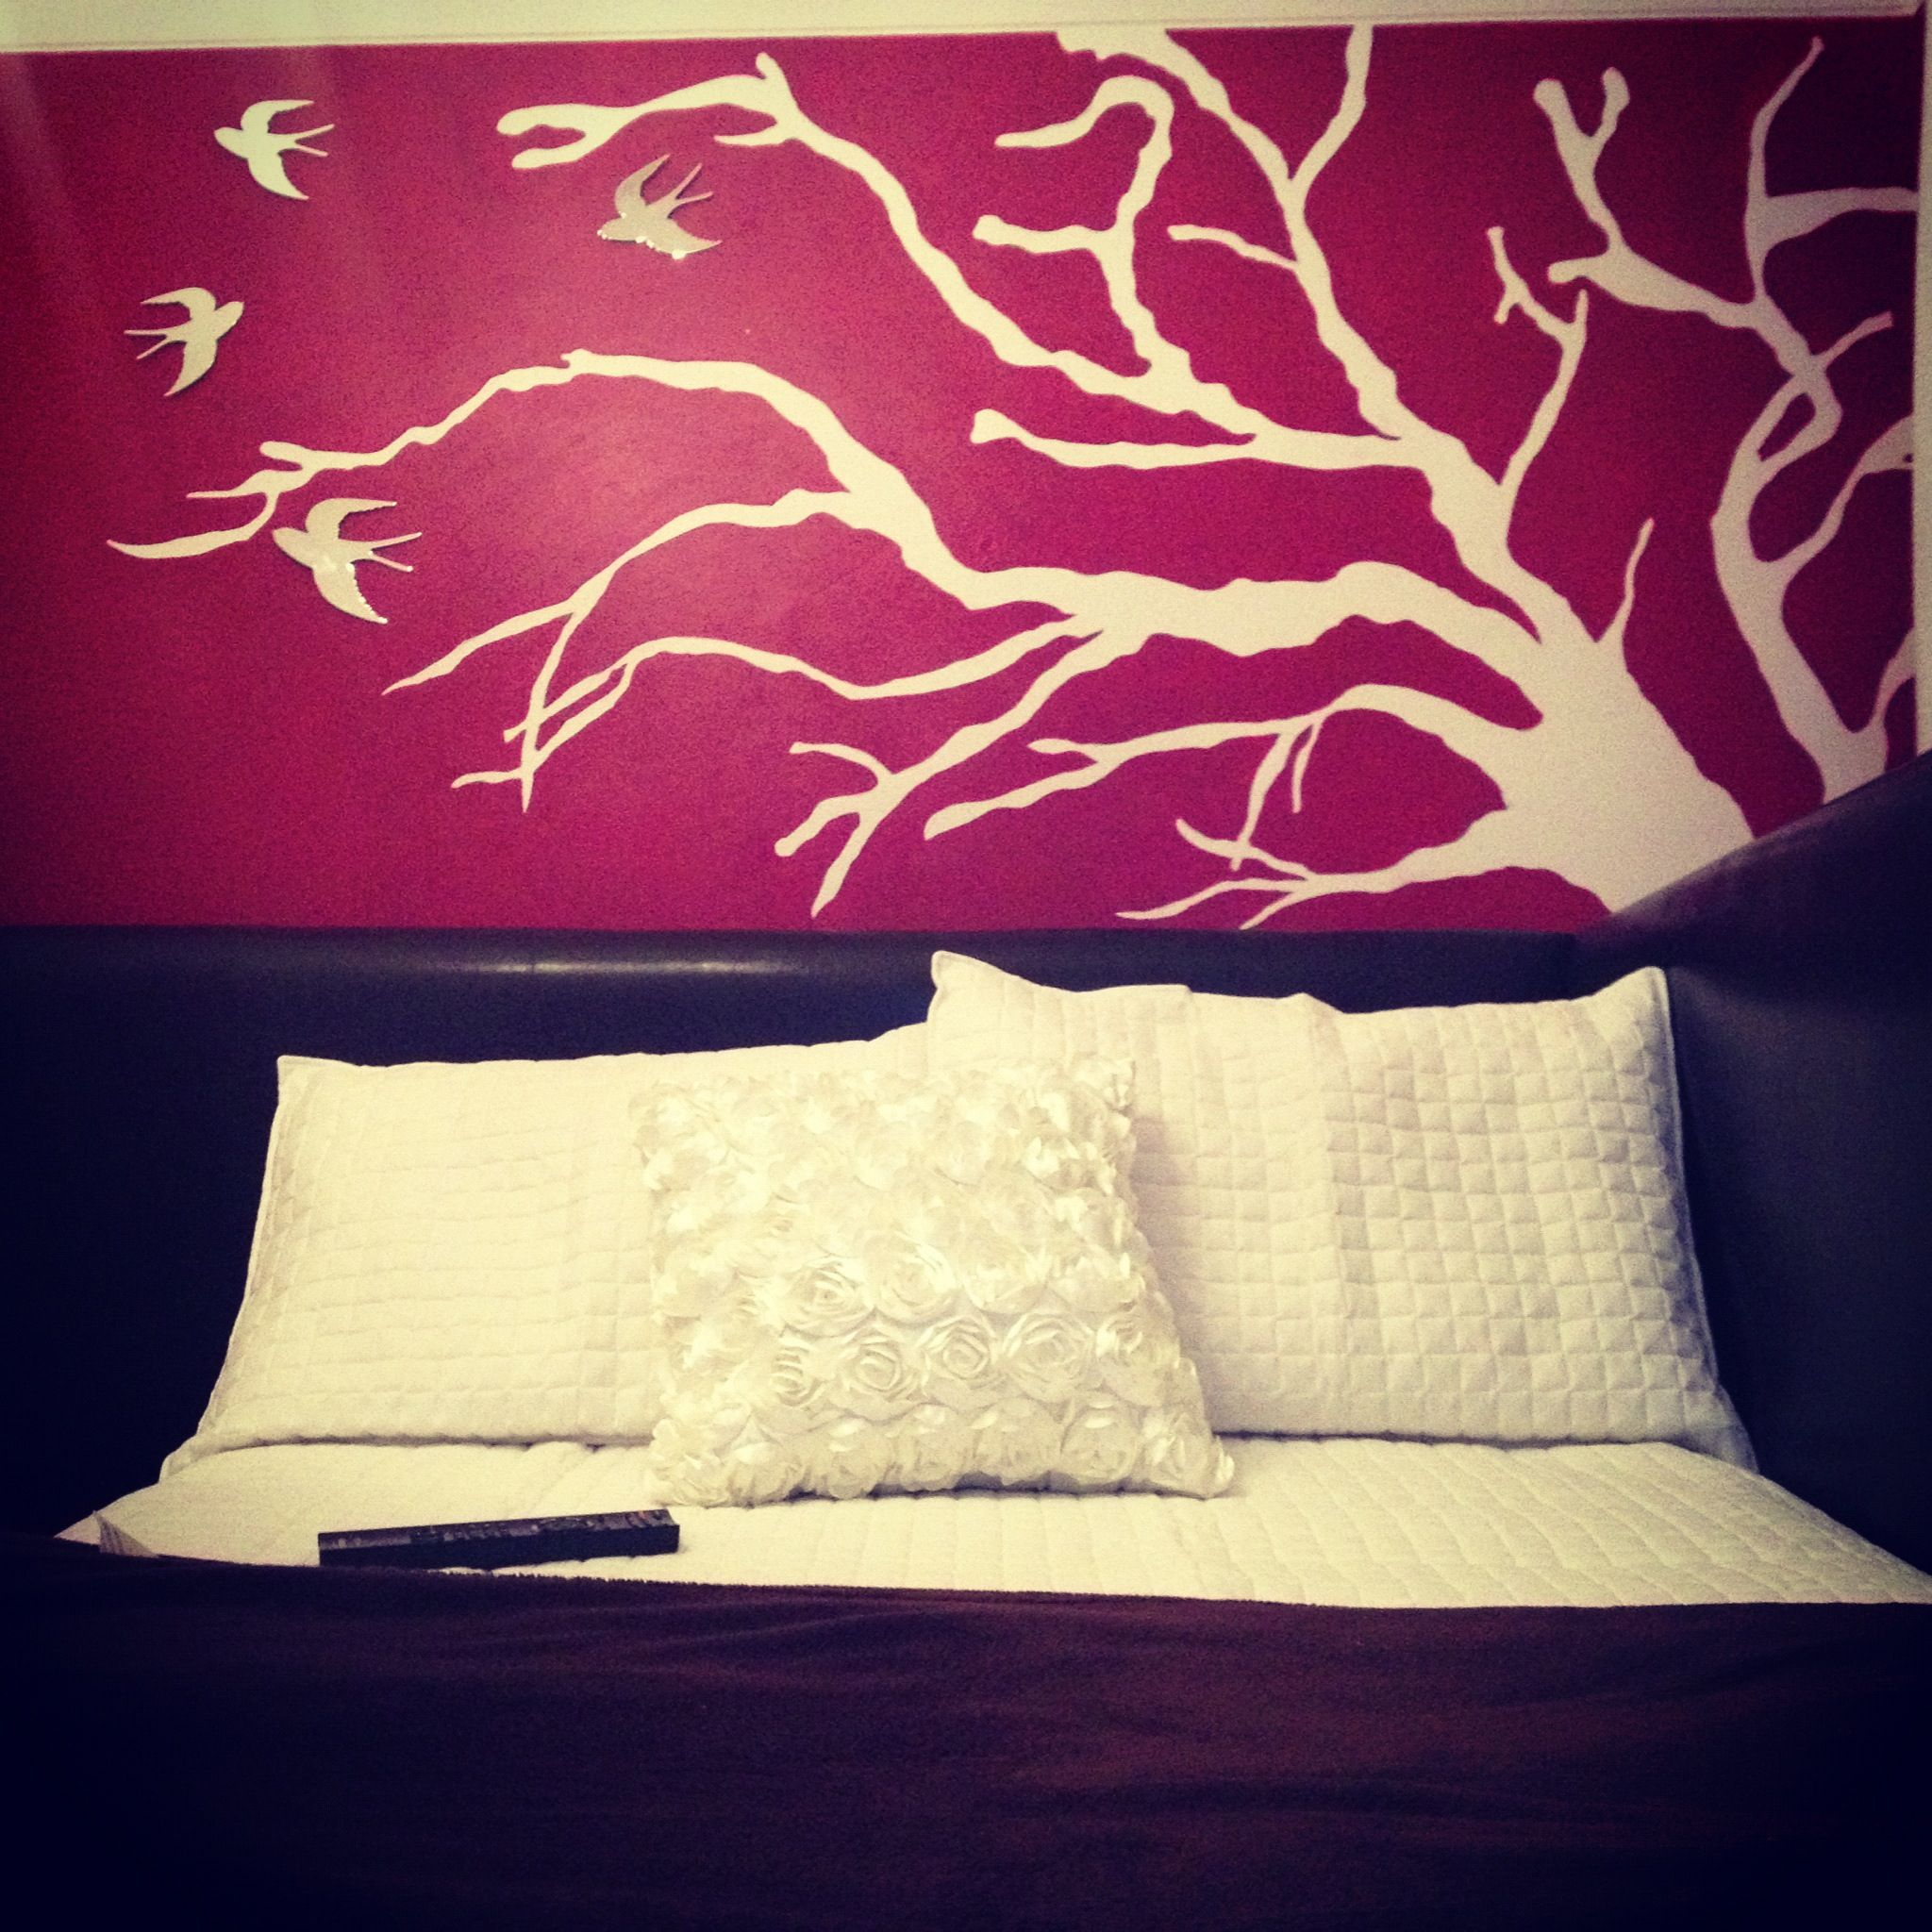 Bedroom tree painting indie birds red white | Fun | Pinterest ...